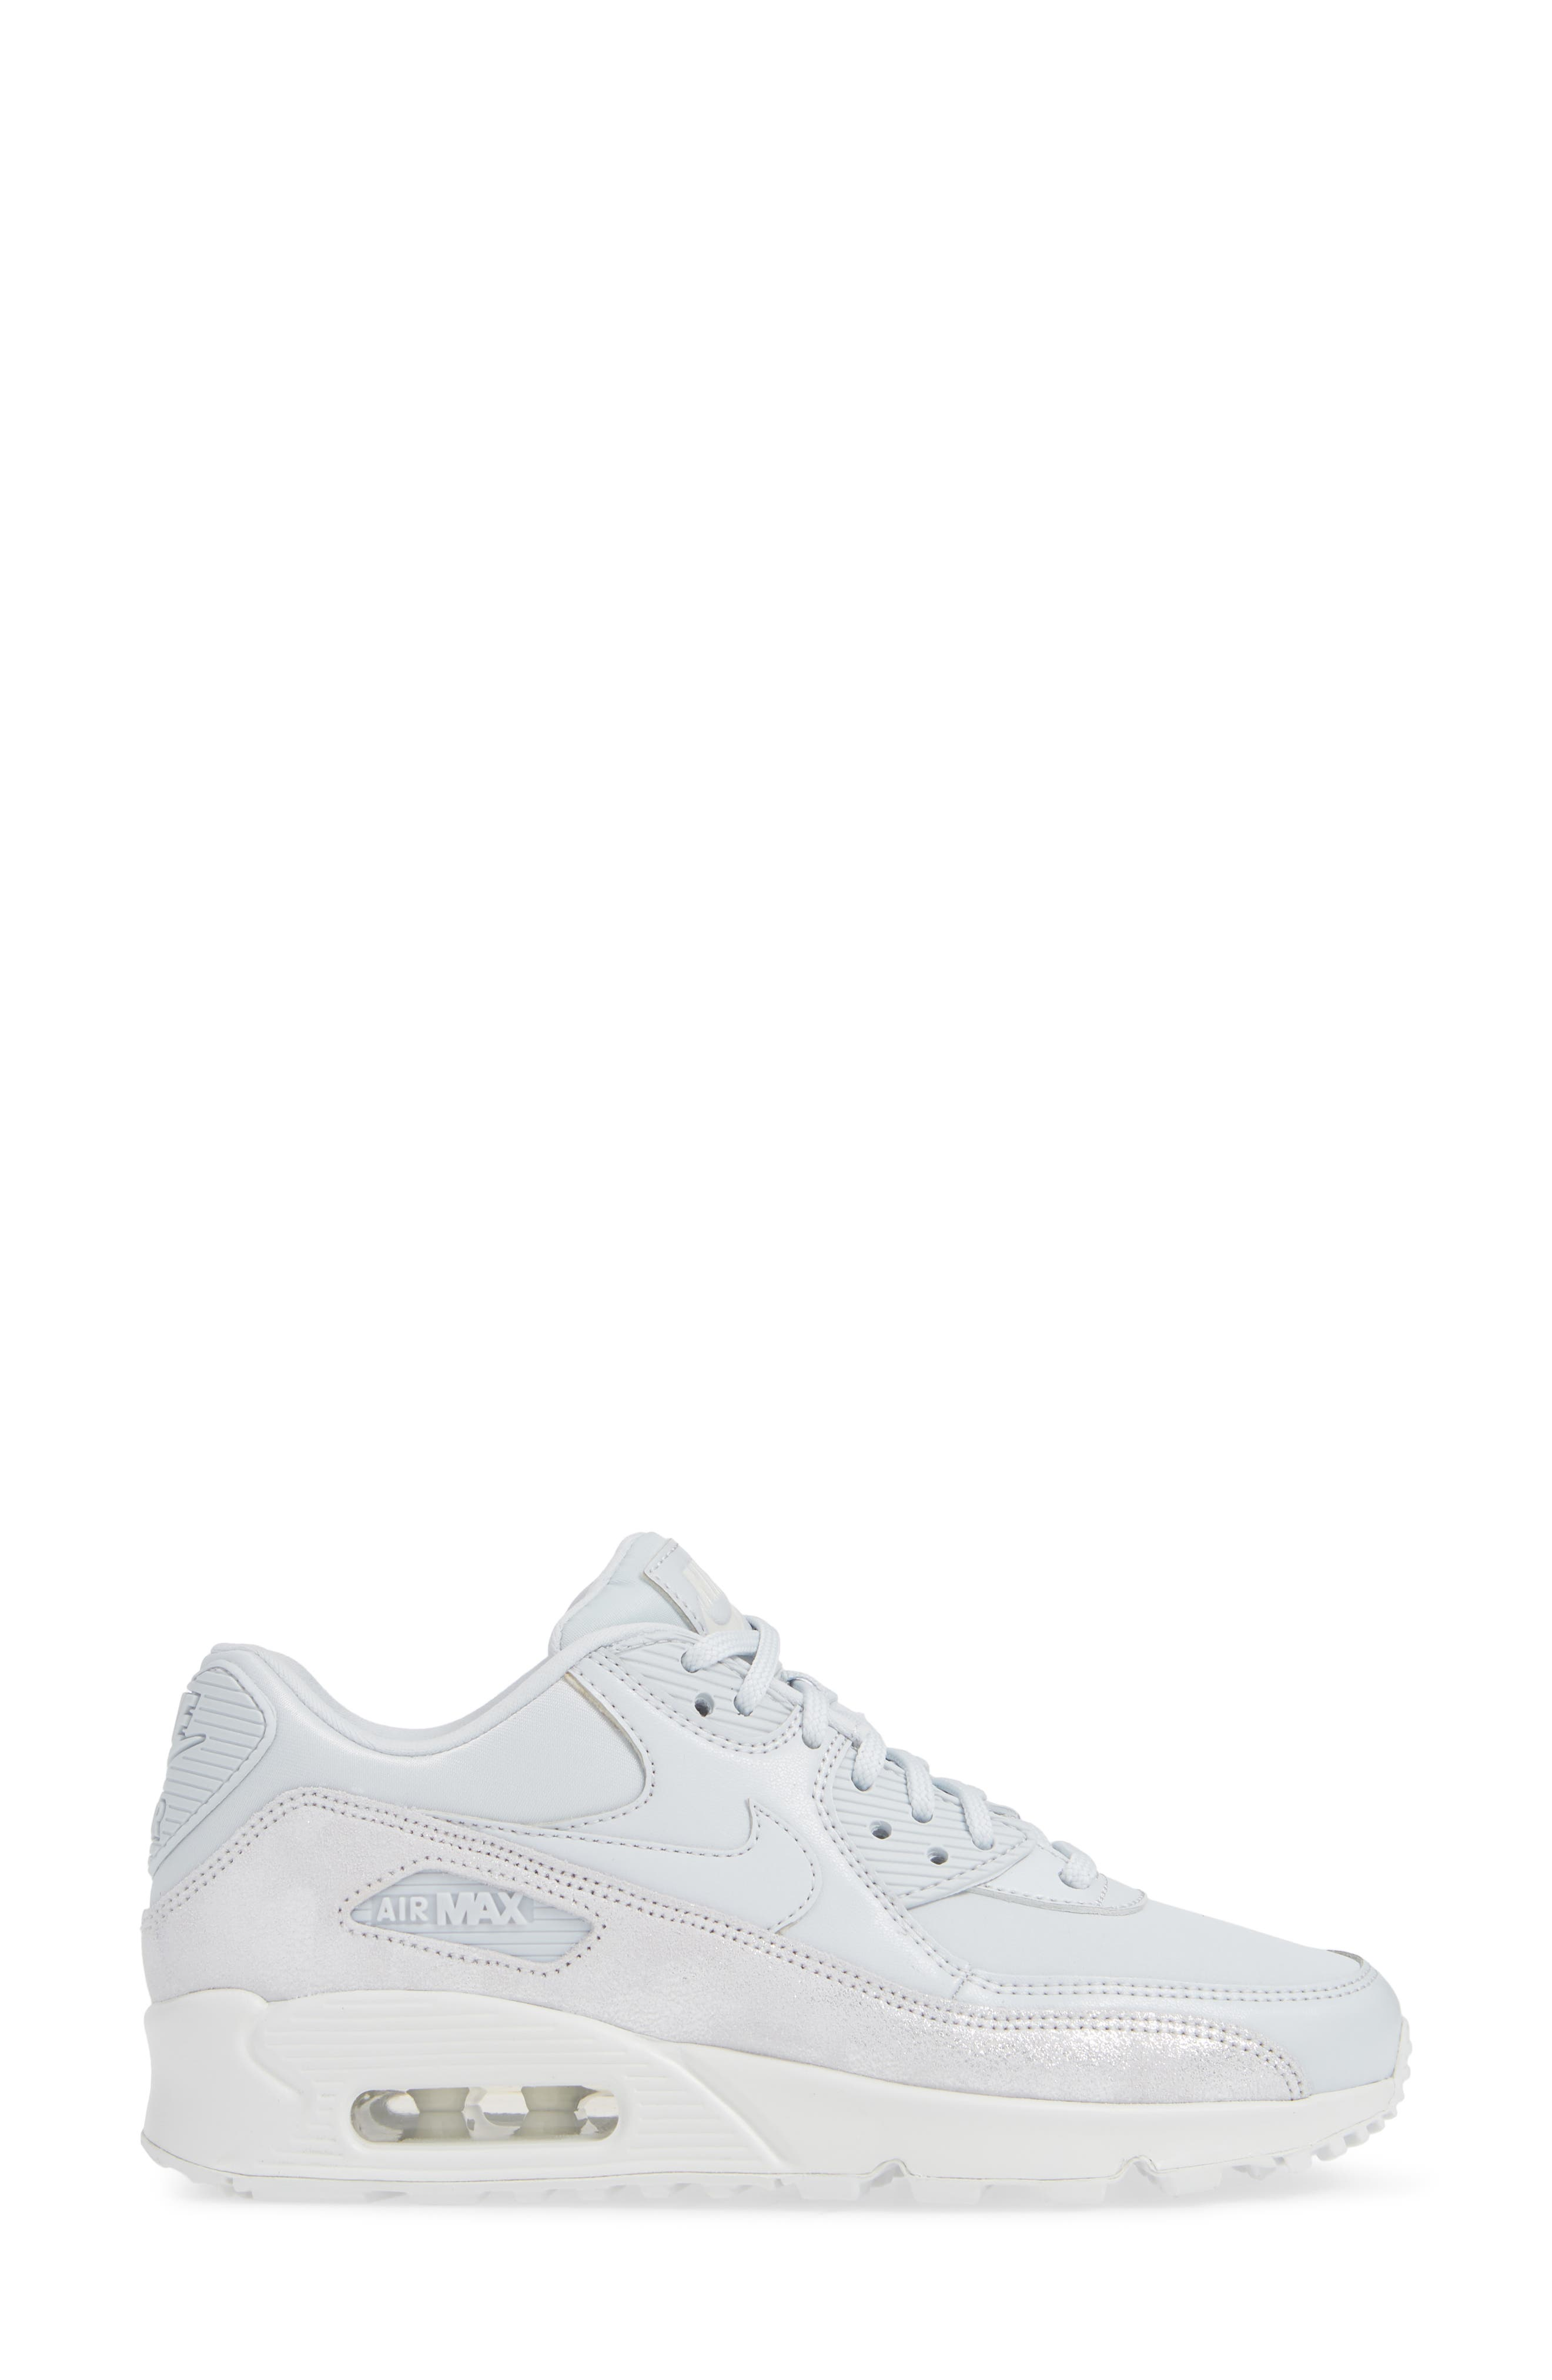 Air Max 90 SE Sneaker,                             Alternate thumbnail 3, color,                             PURE PLATINUM/ PLATINUM- WHITE